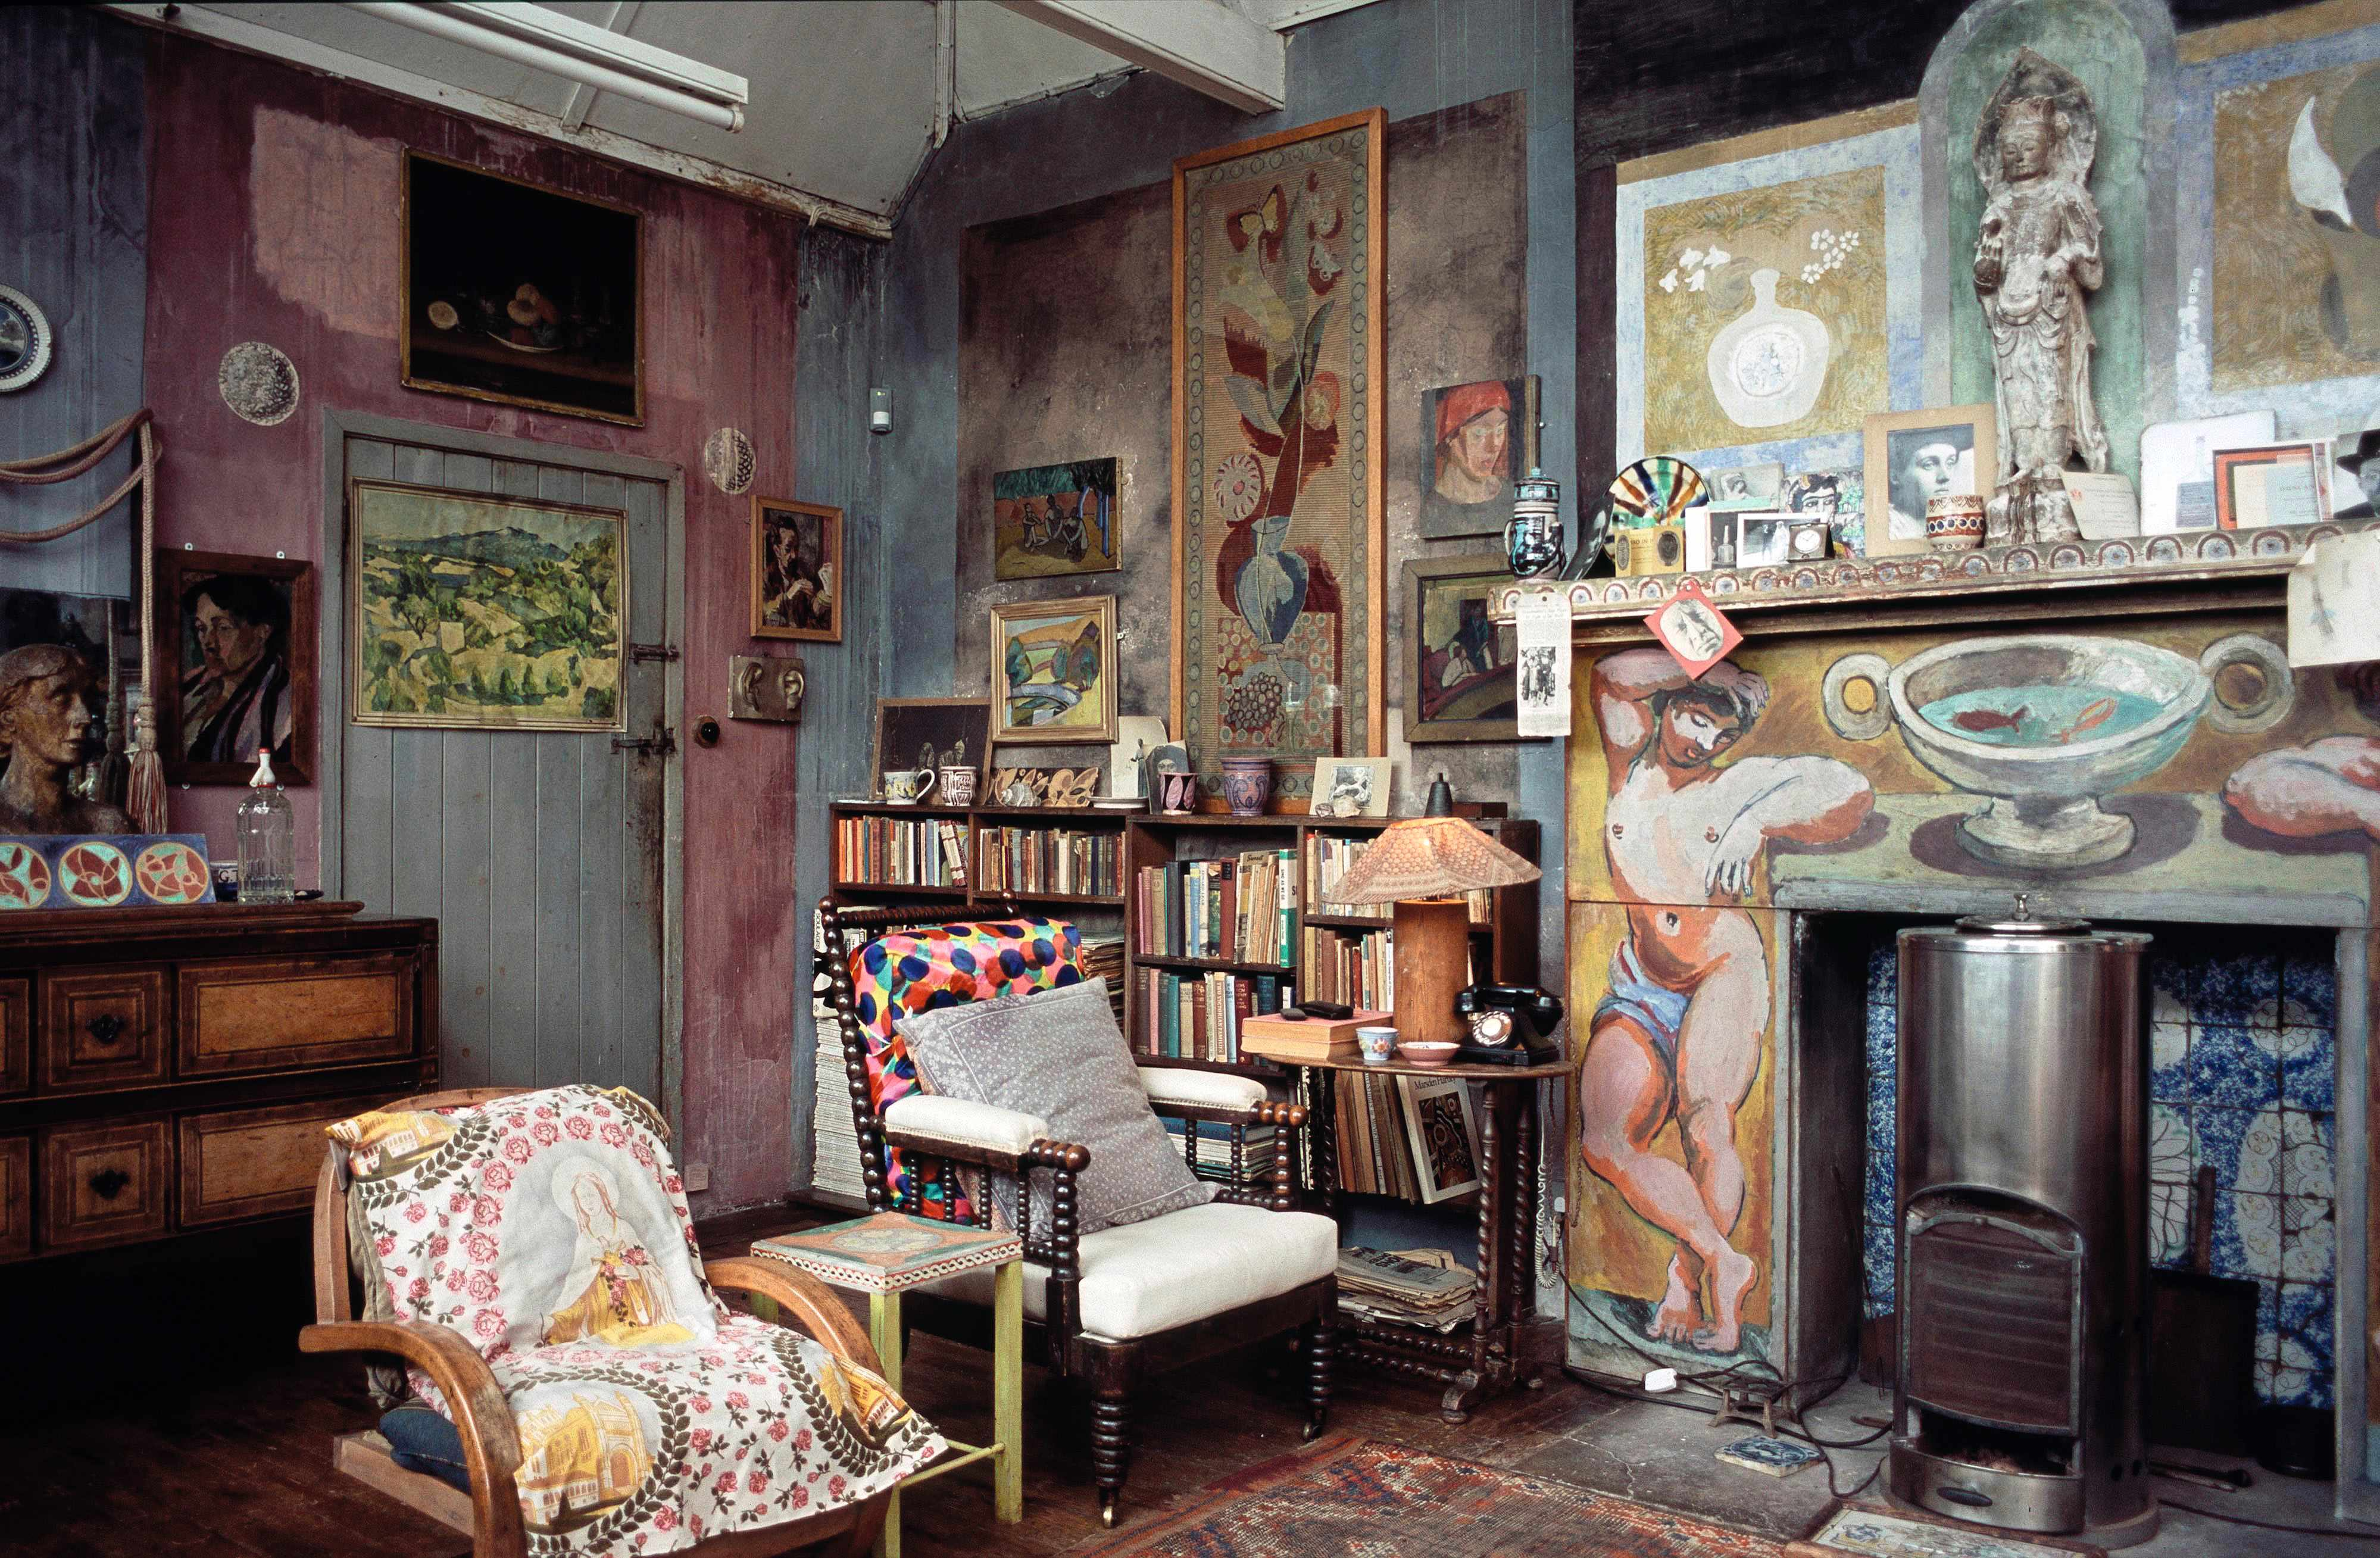 Duncan Grant's studio at Charleston. Despite its lack of creature comforts, the East Sussex farmhouse became the weekend hub of the Bloomsbury set. (Photo by Charleston House/Tony Tree)